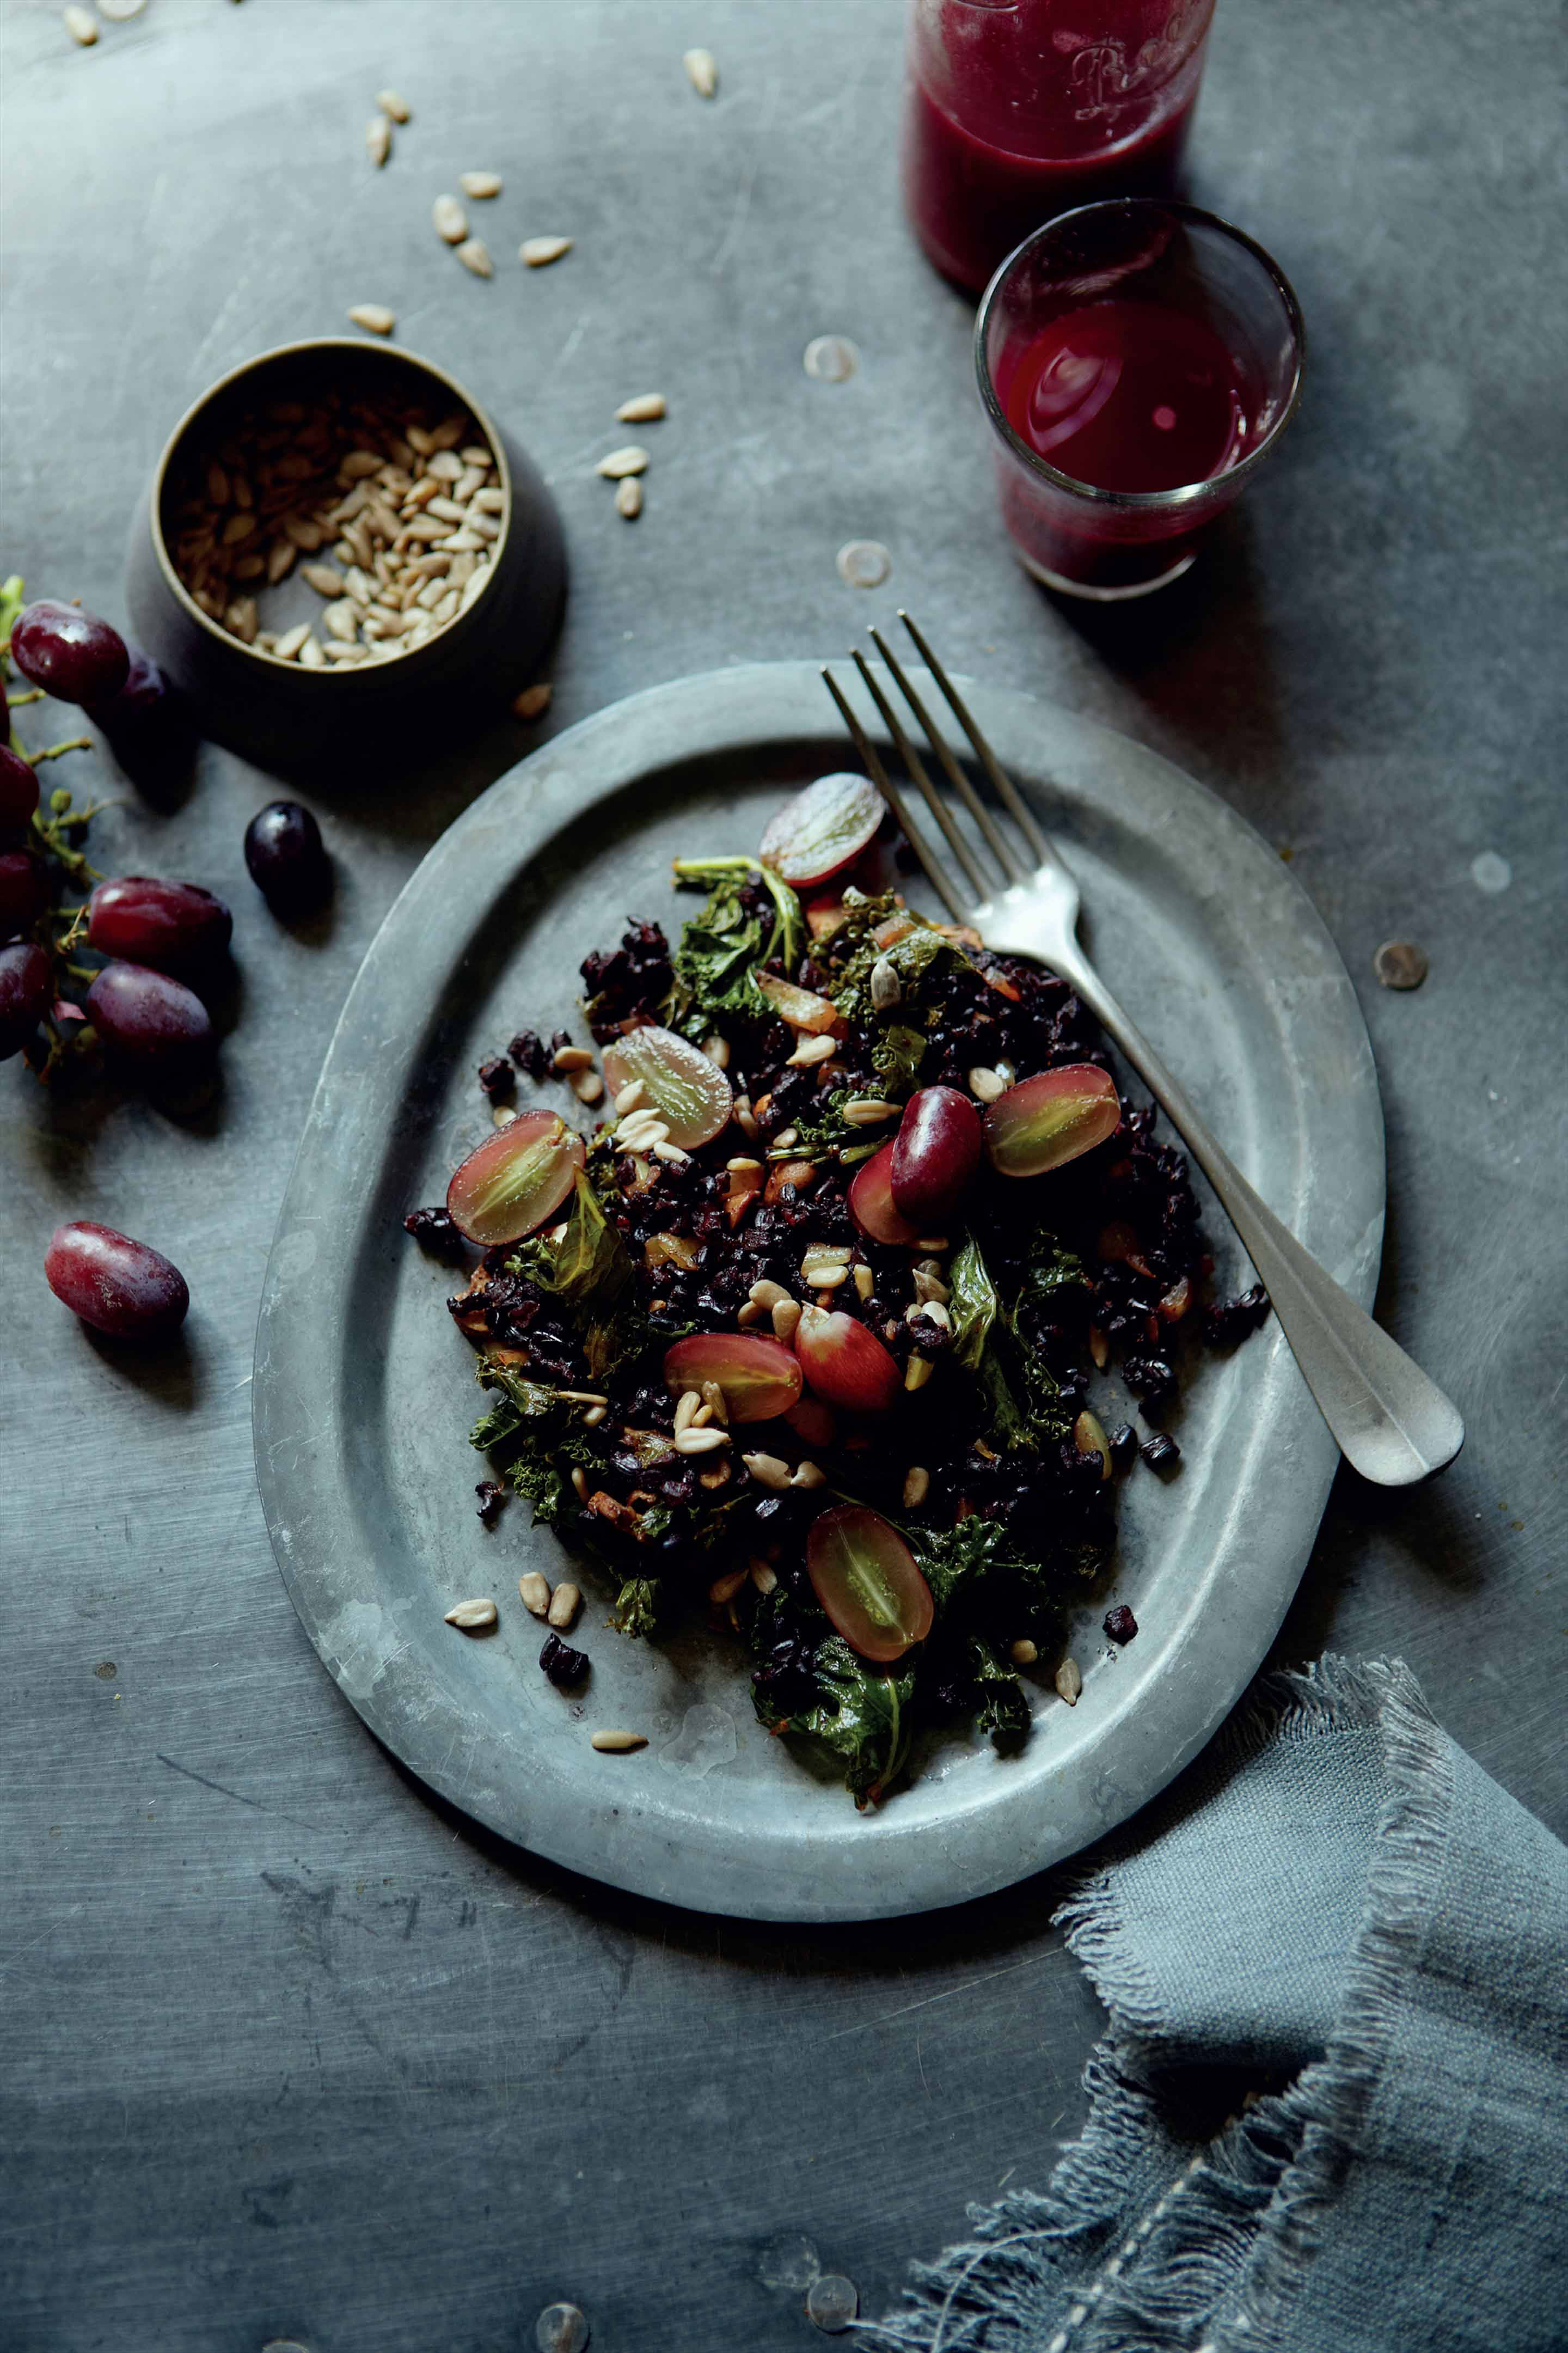 Black rice, kale, seed and red grape pilaf